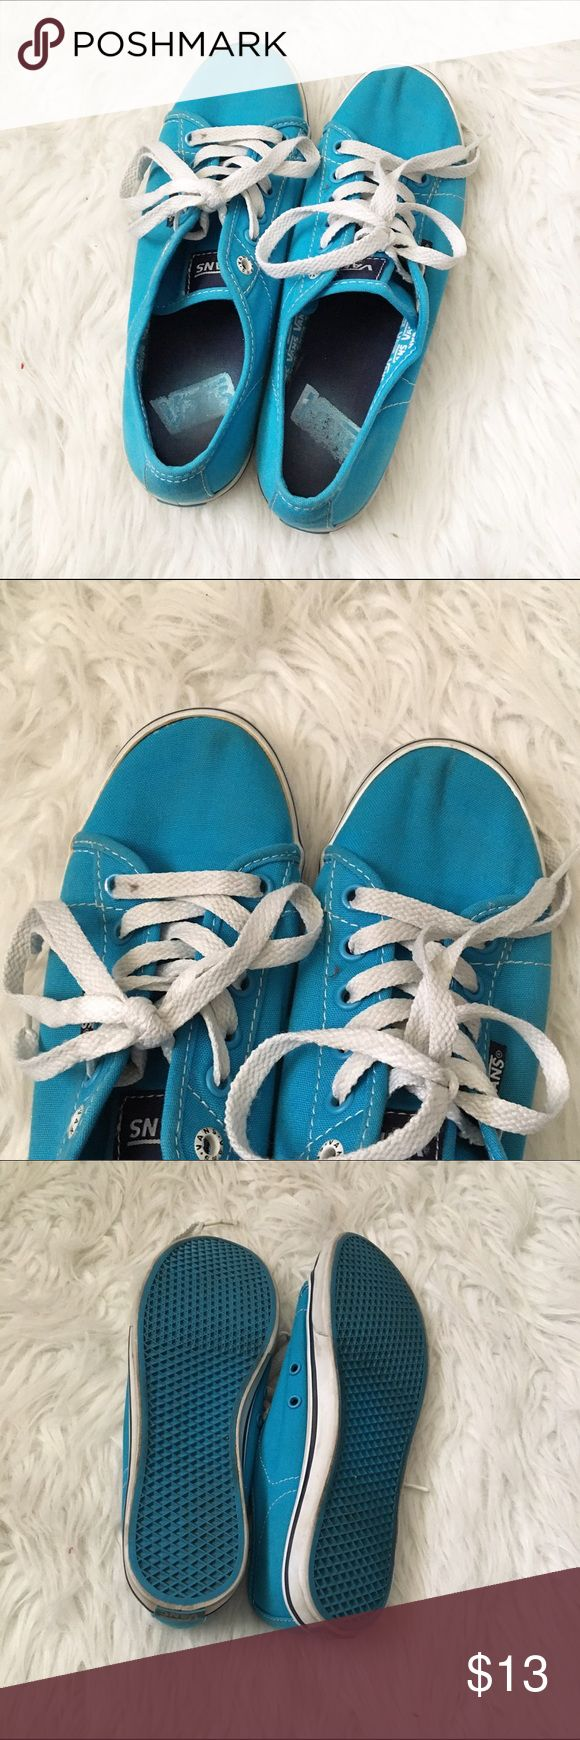 Blue Vans Shoes ❤ NO TRADES ❤ ❤ YES OFFERS ( bundle offers too) ❤ ❤ NO LOWBALLS ❤ ❤ FREE GIFT $25 + ❤ ❤ CLOSET DISCOUNT 15% OFF 2+ ❤ Vans Shoes Sneakers